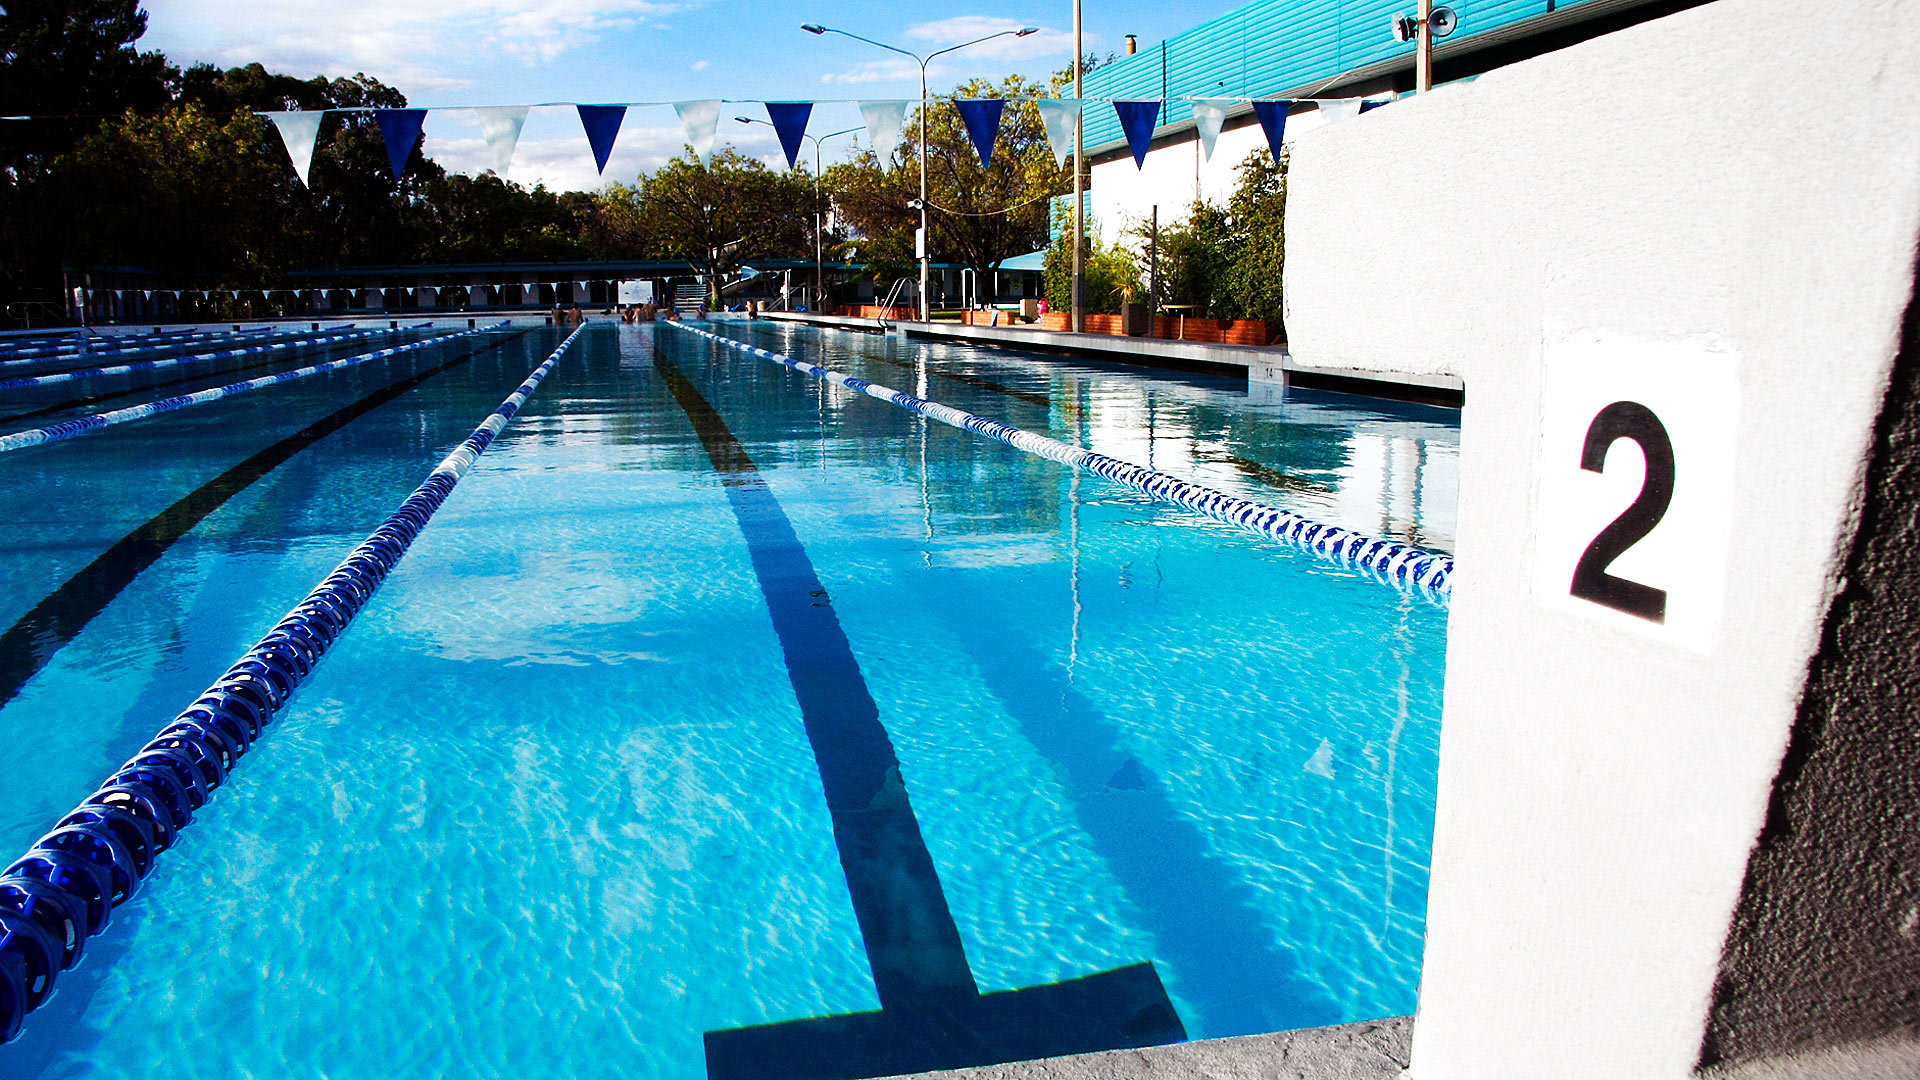 Phillip swimming pool, woden, canberra, swimming pools